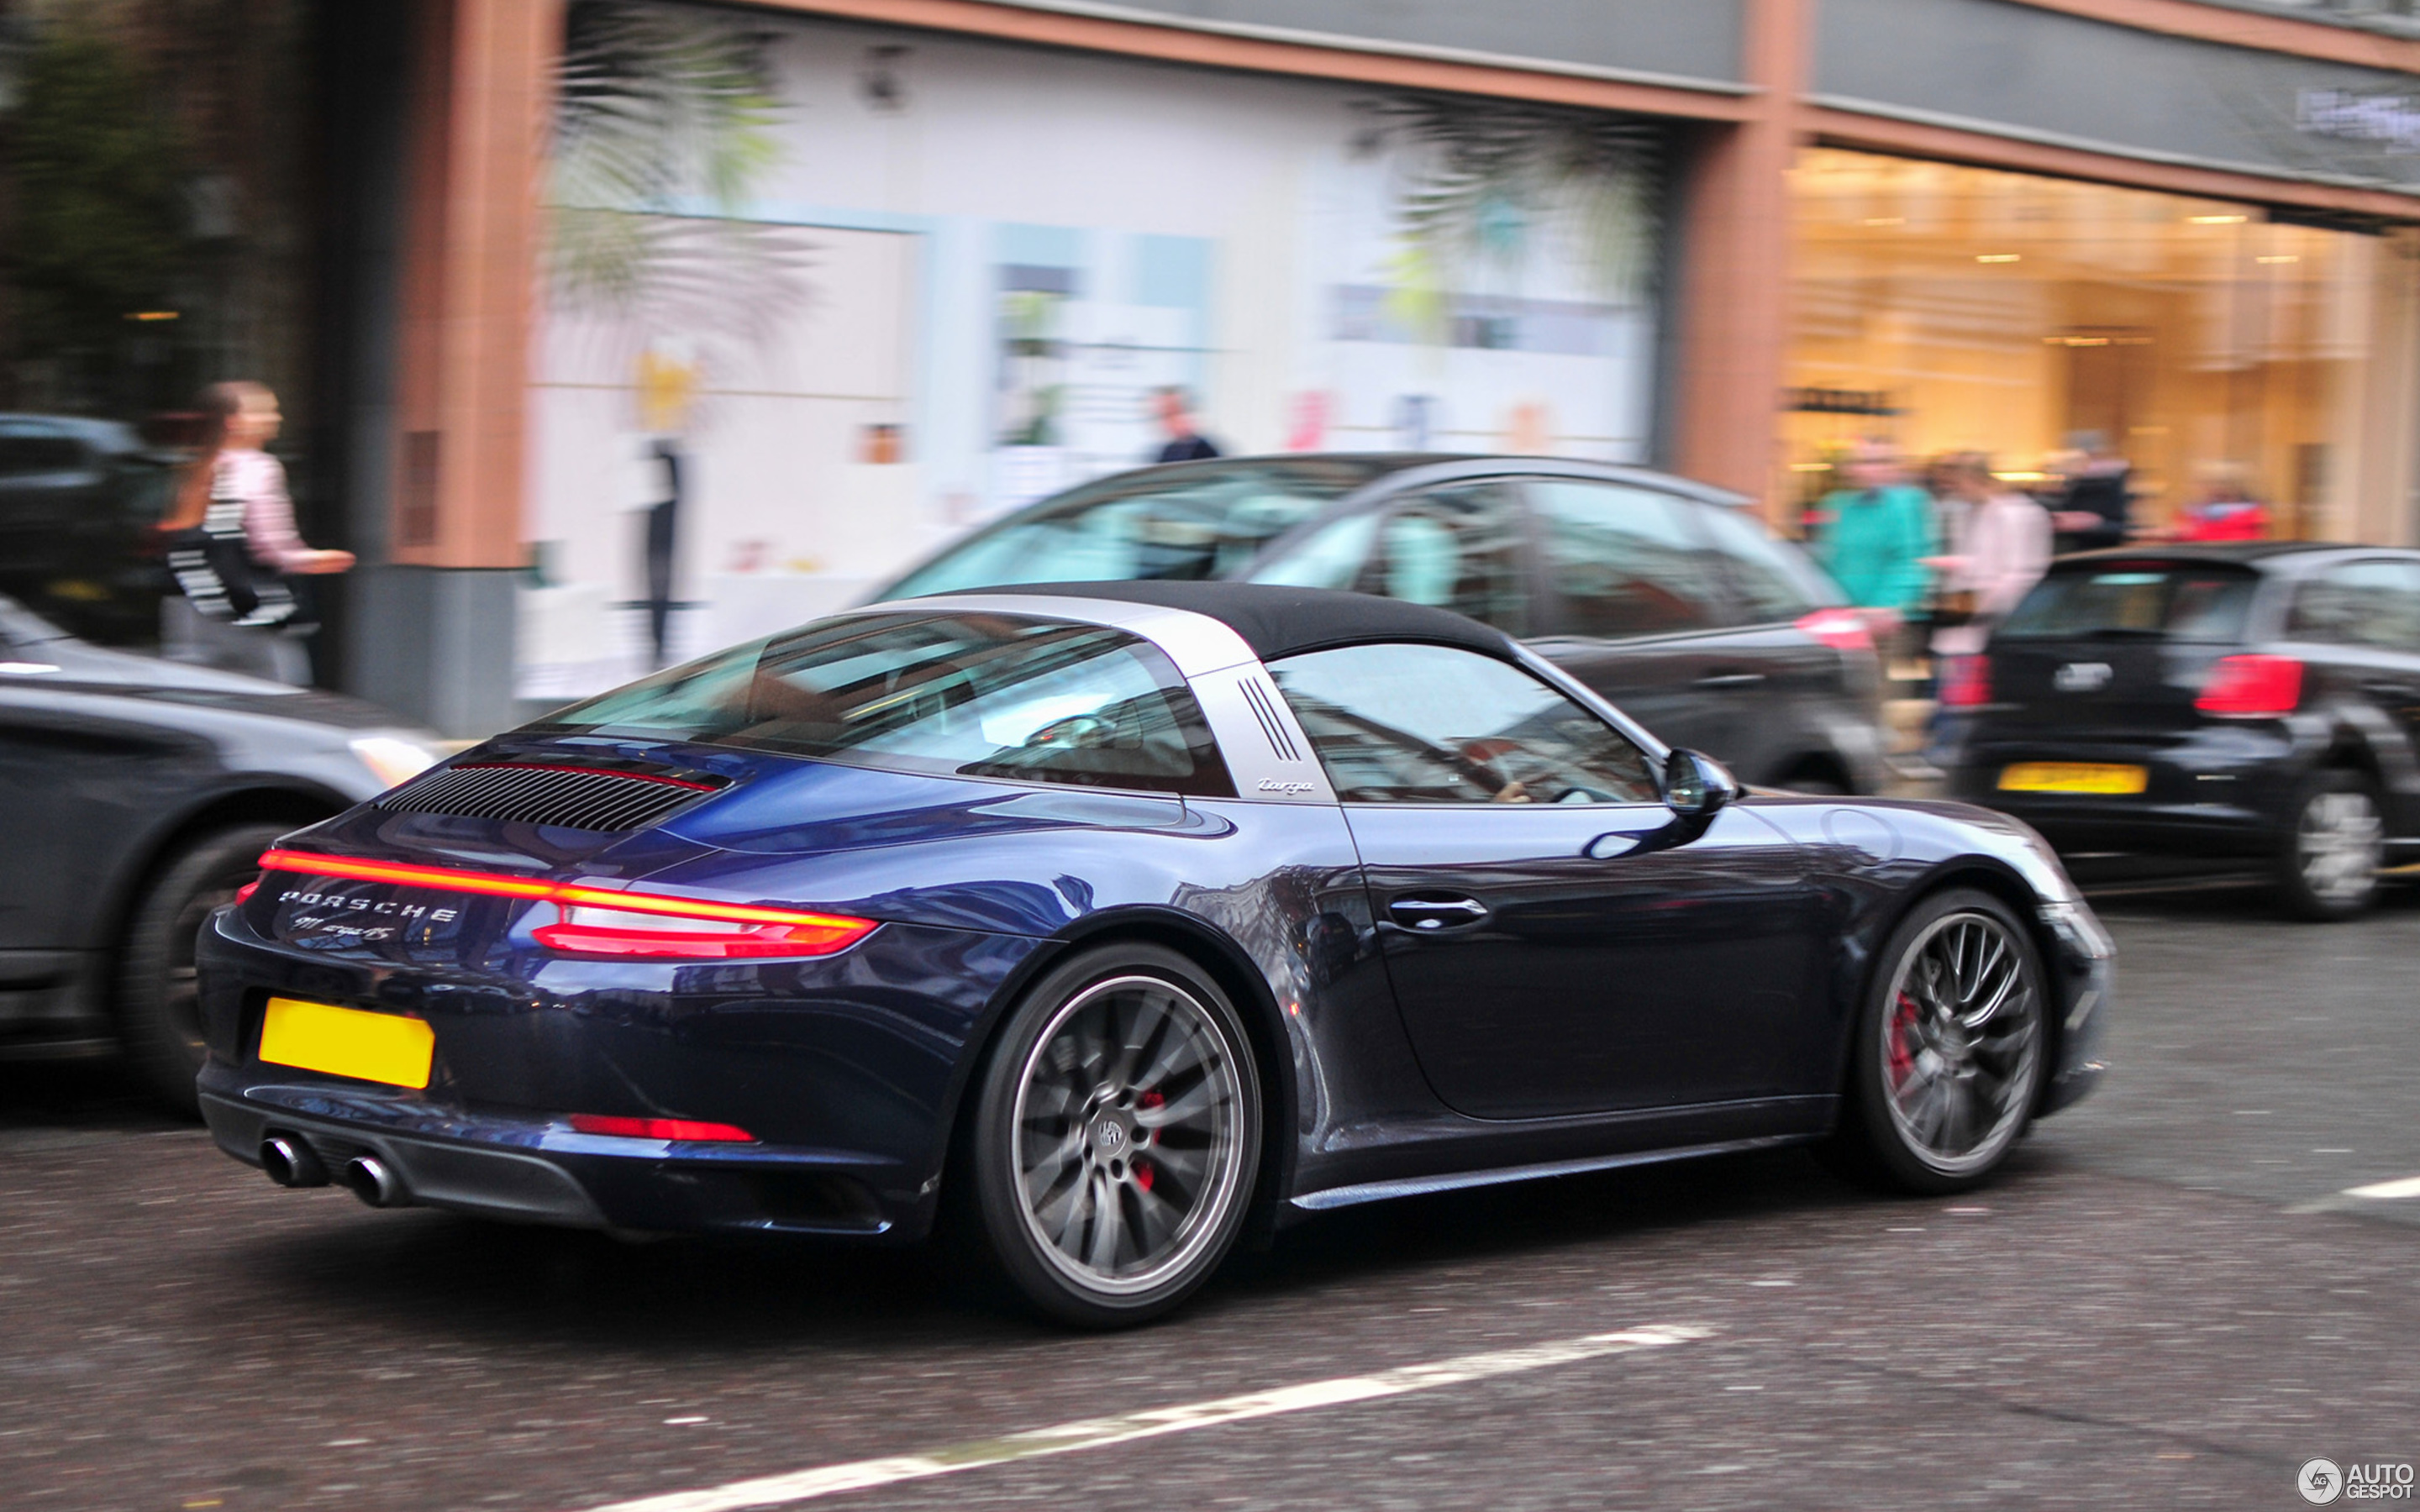 Porsche 991 targa 4s mkii 17 march 2017 autogespot porsche 991 targa 4s mkii sciox Image collections